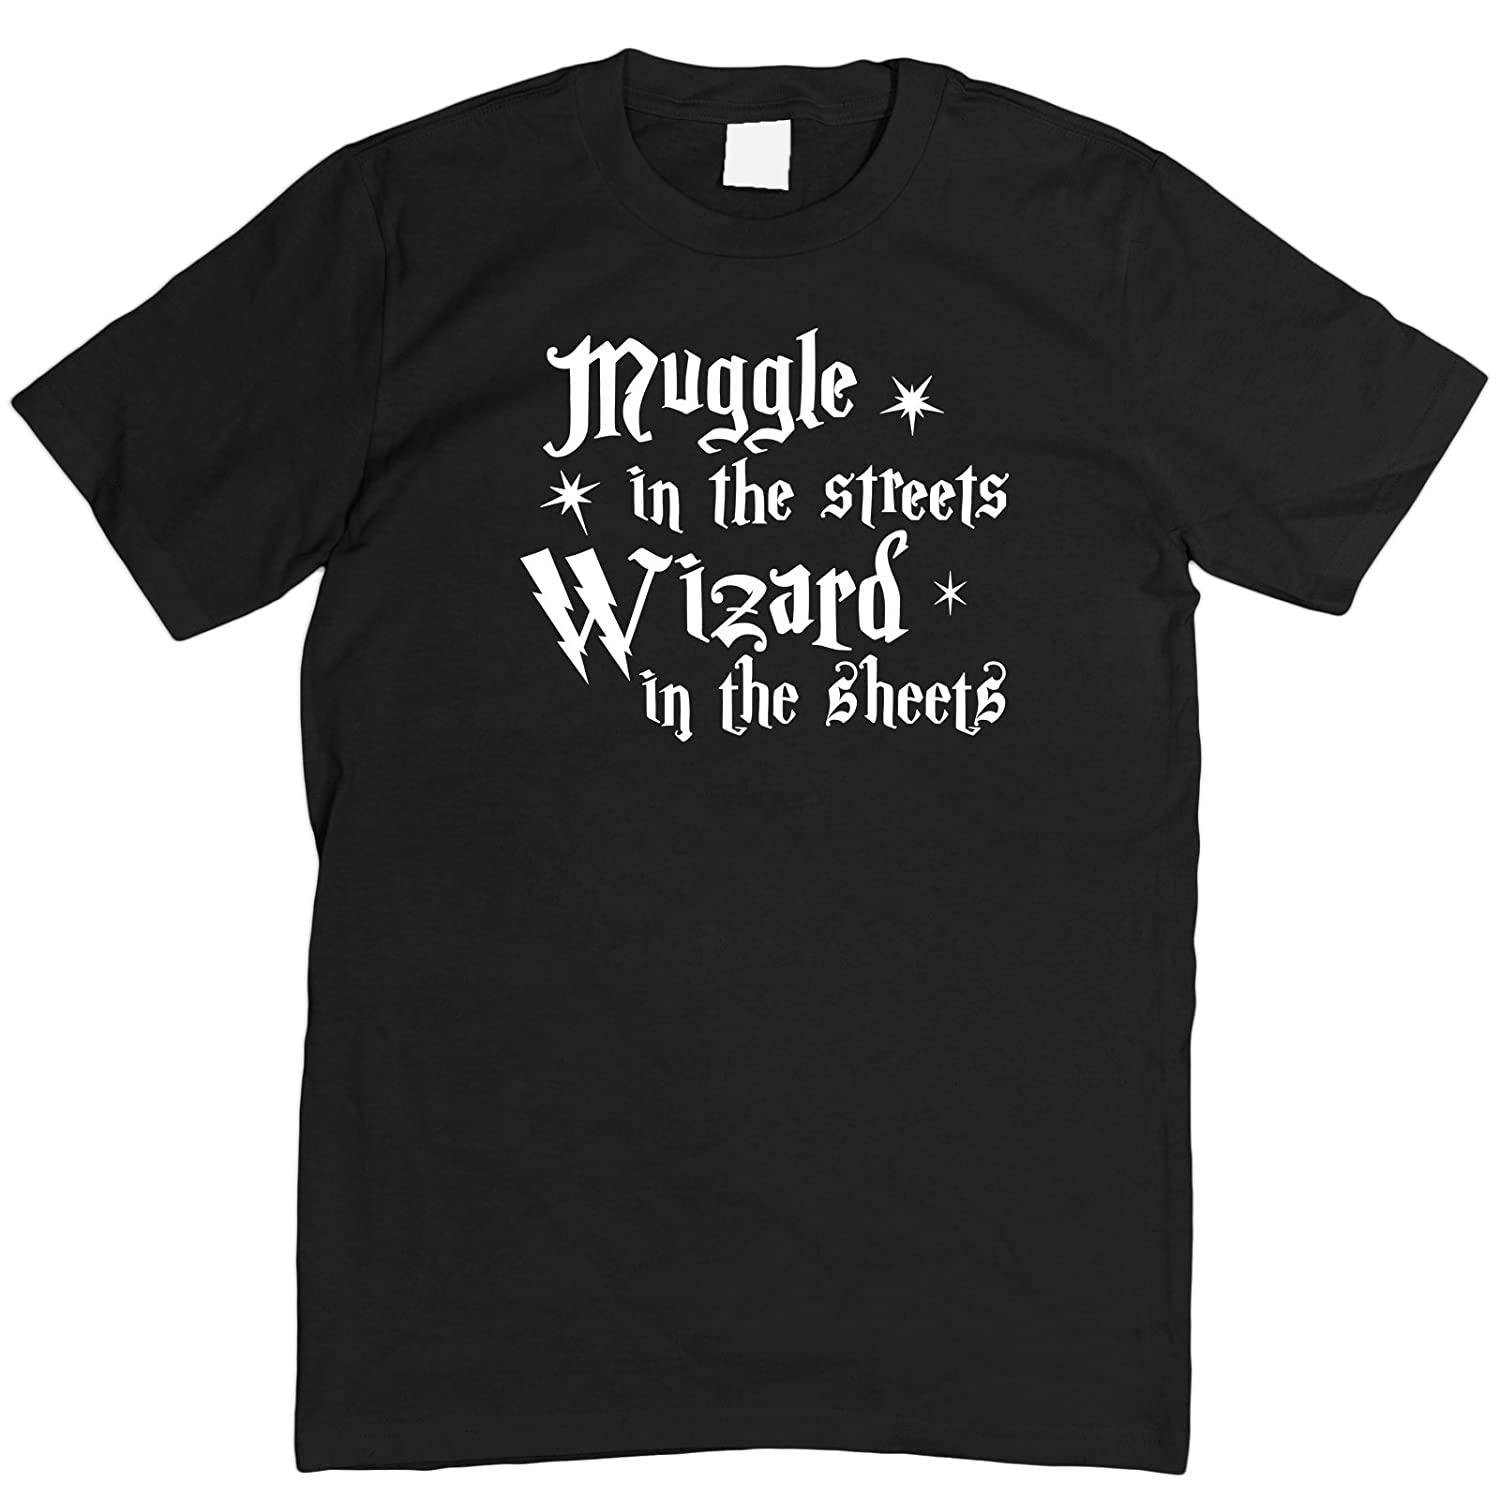 Muggle in the Streets Wizard in the Sheets T-Shirt S - 5XL: Amazon.co.uk:  Clothing